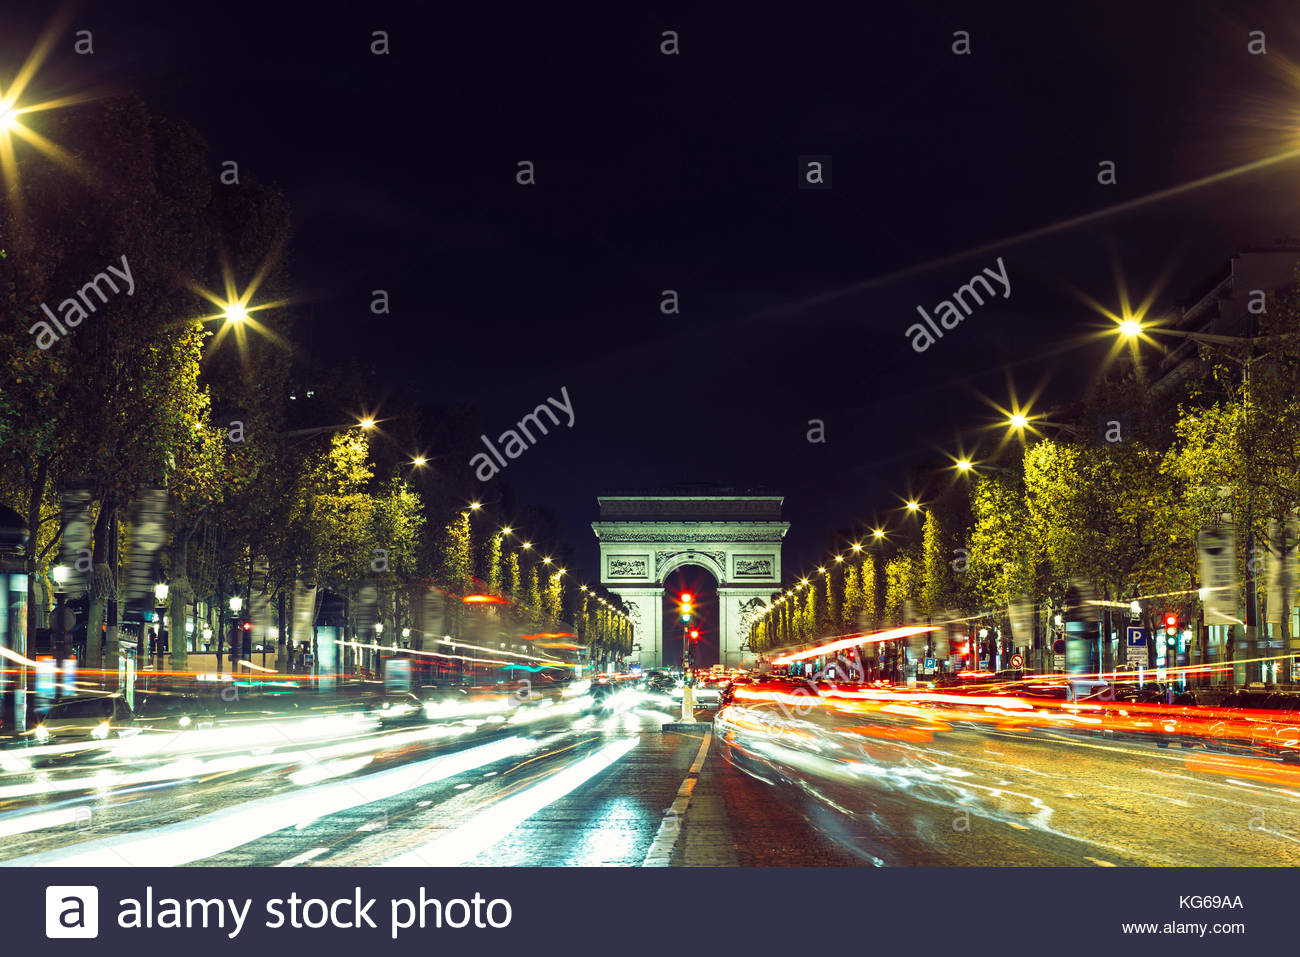 Illuminated Arc de Triomphe and the avenue Champs-Elysees in Paris. Famous touristic places and transportation concept. - Stock Image